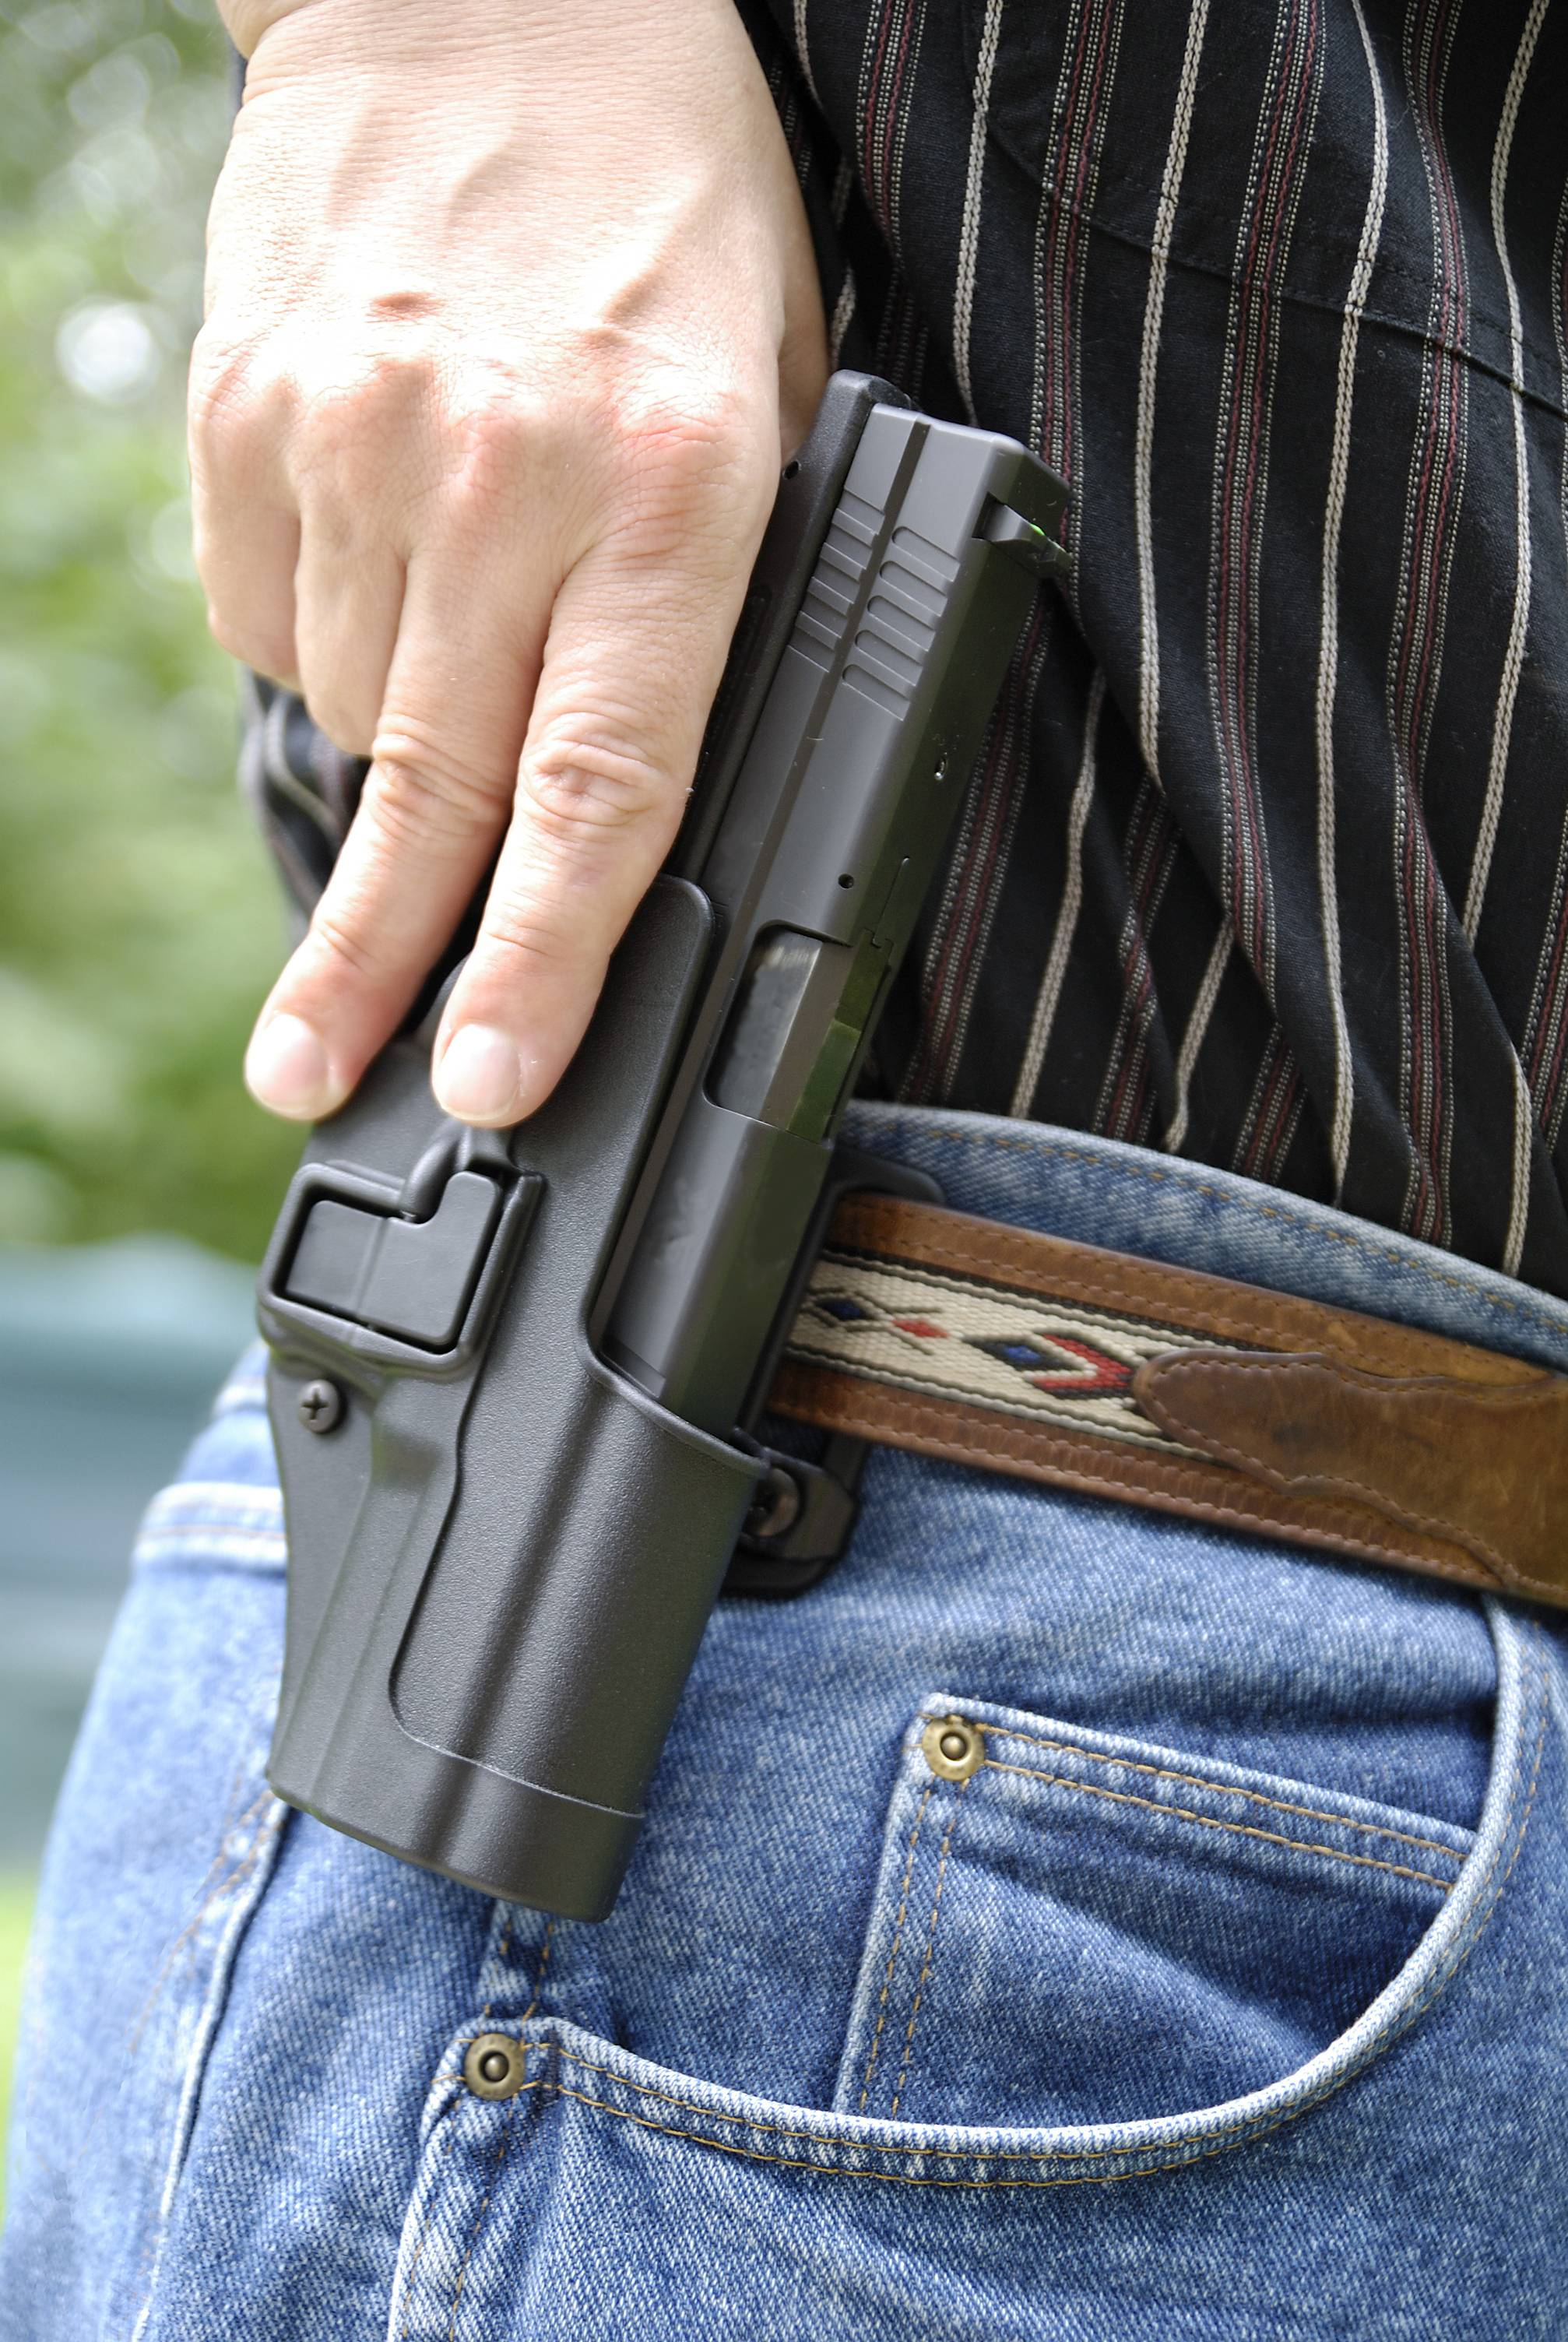 Concealed carry permits are out